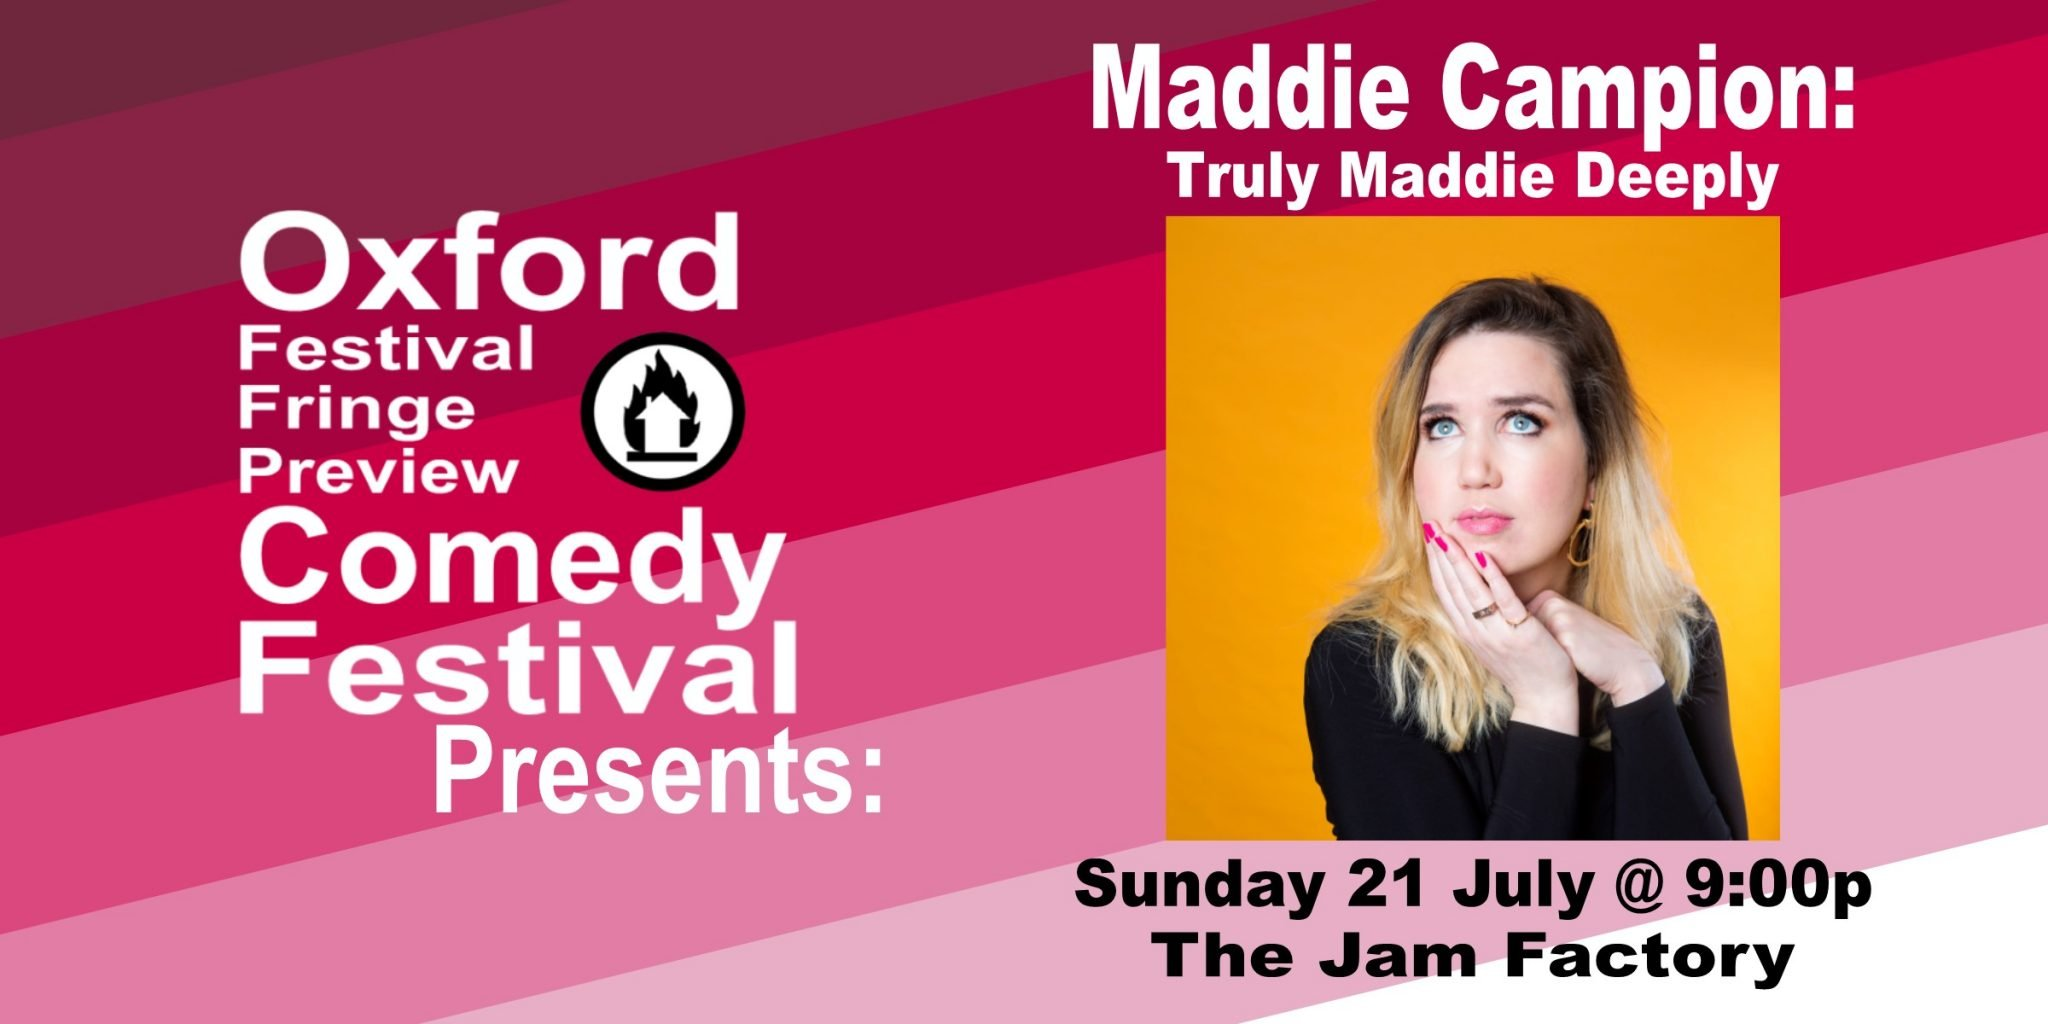 Oxford Comedy Festival 2019 presents Maddie Campion: Truly Maddie Deeply